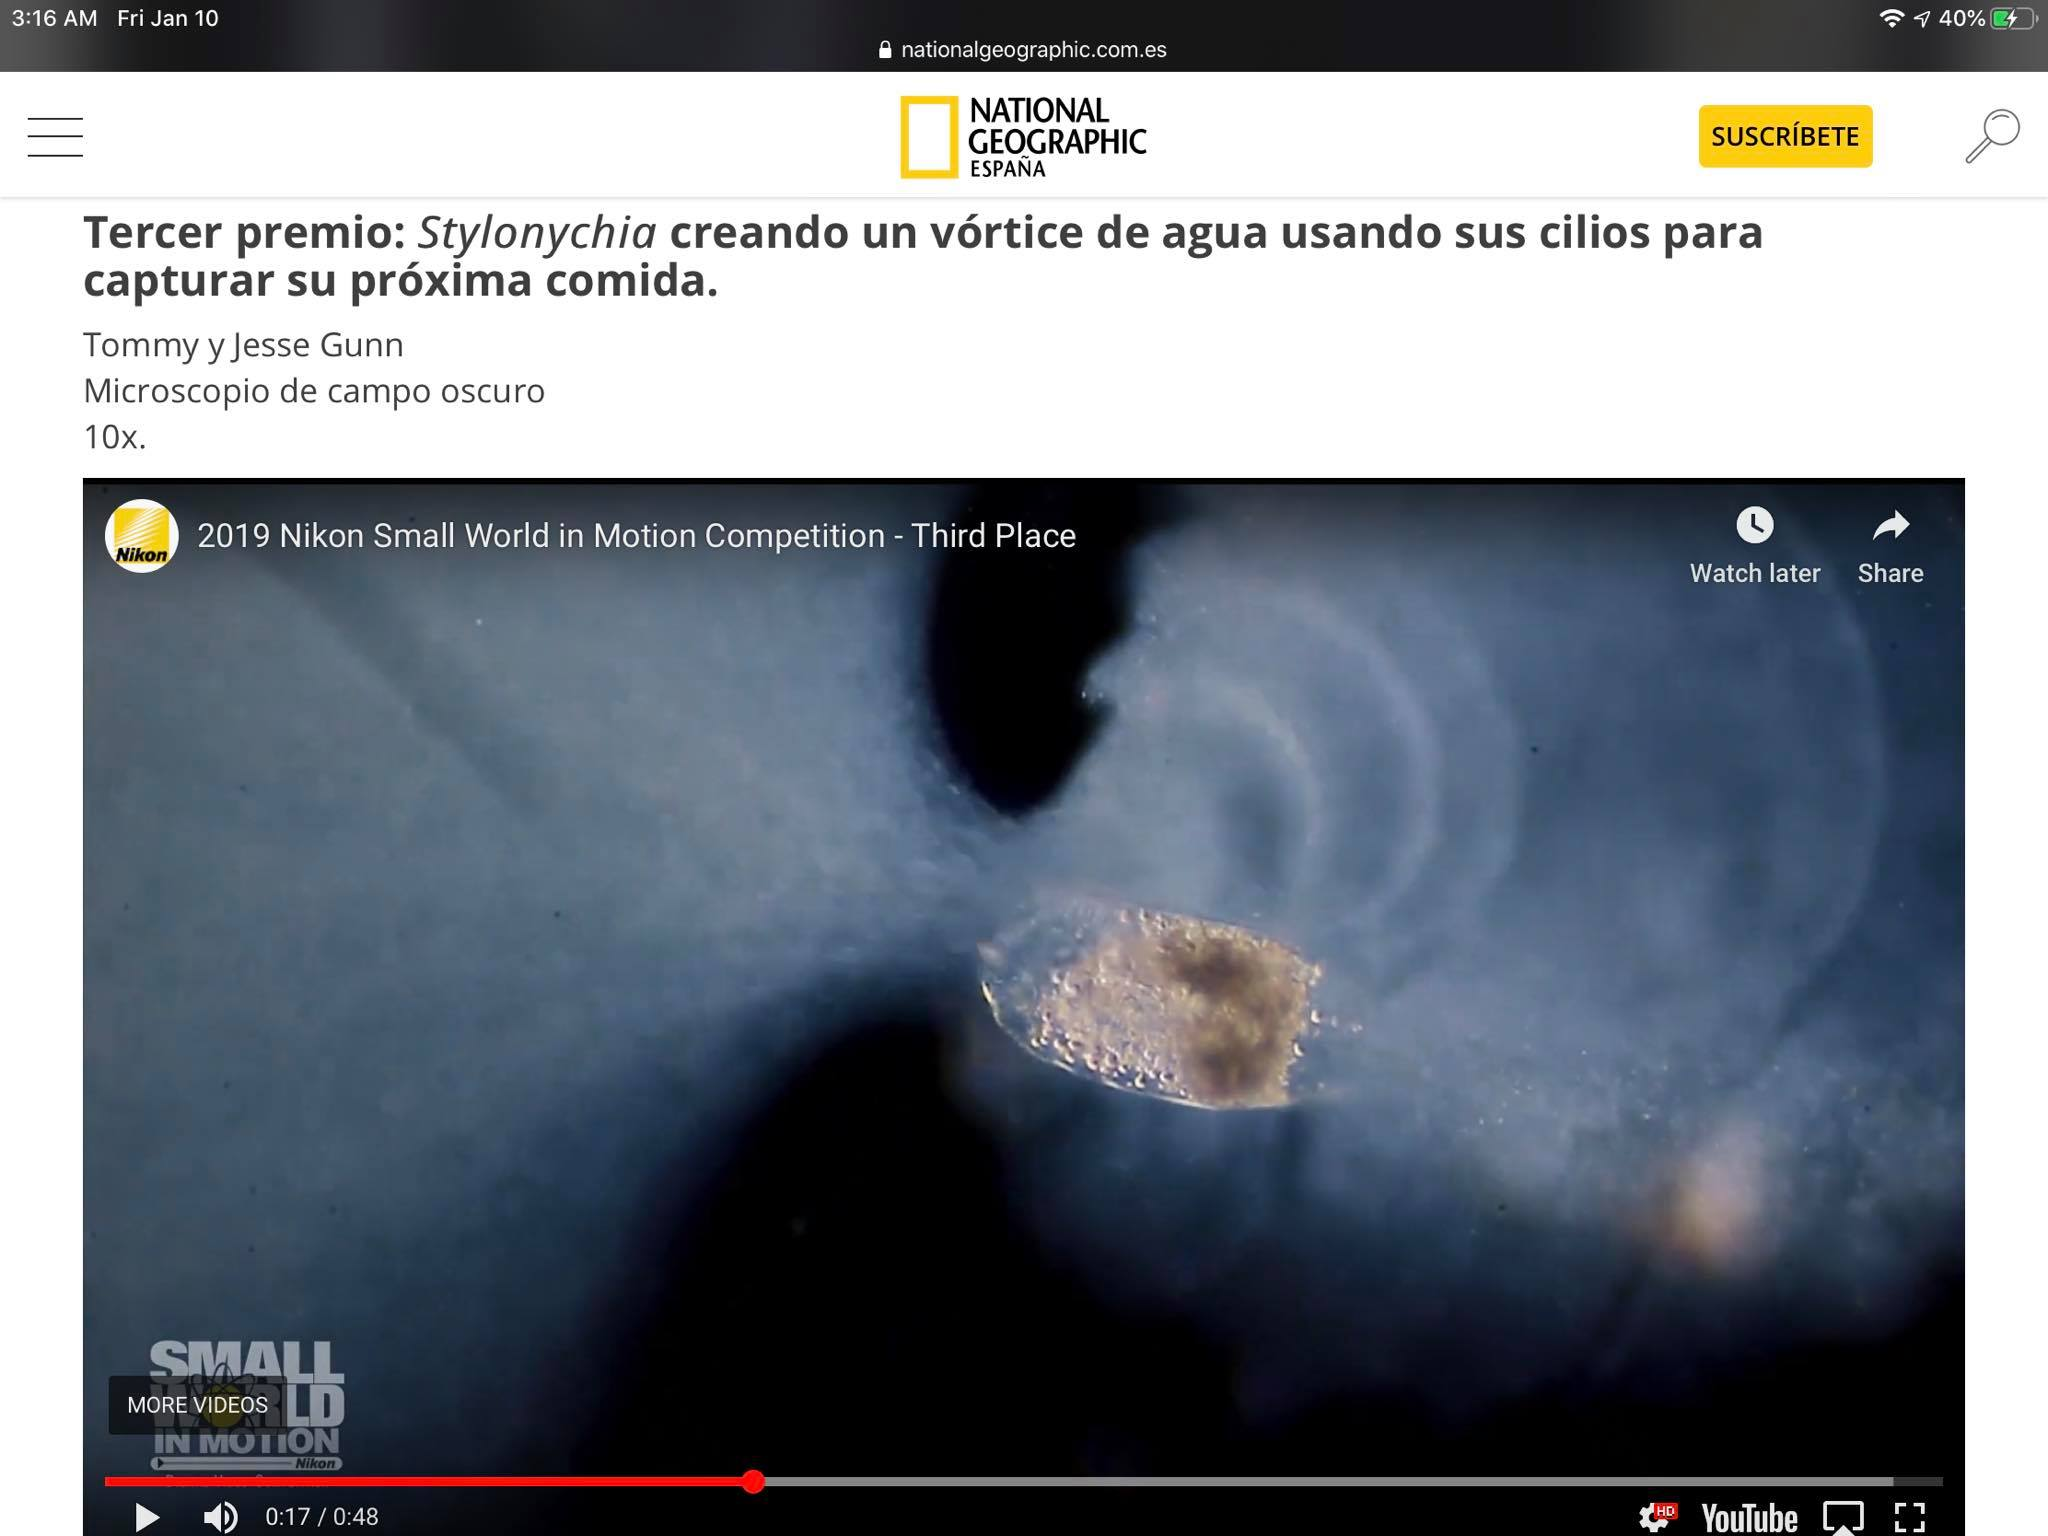 We made into National Geographic Espana!